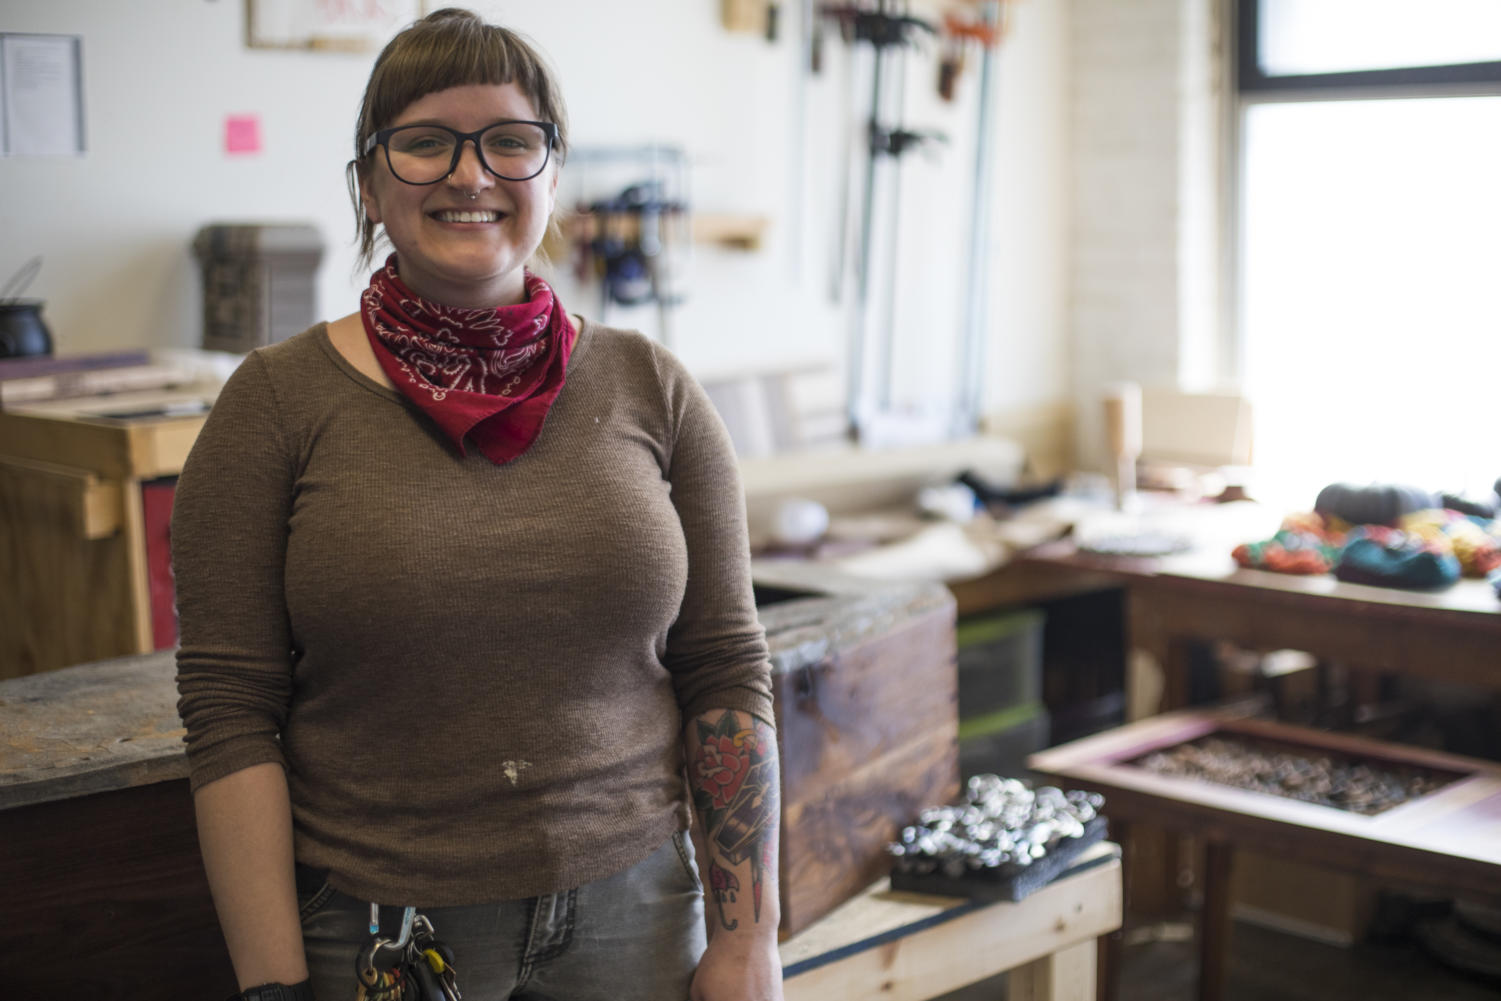 Jam Lovell, a third-year MFA candidate in sculpture from East Peoria, poses for a portrait among her sculptures, Friday, April 20, 2018, at her studio in the SIU Glove Factory. (Corrin Hunt | @CorrinIHunt)